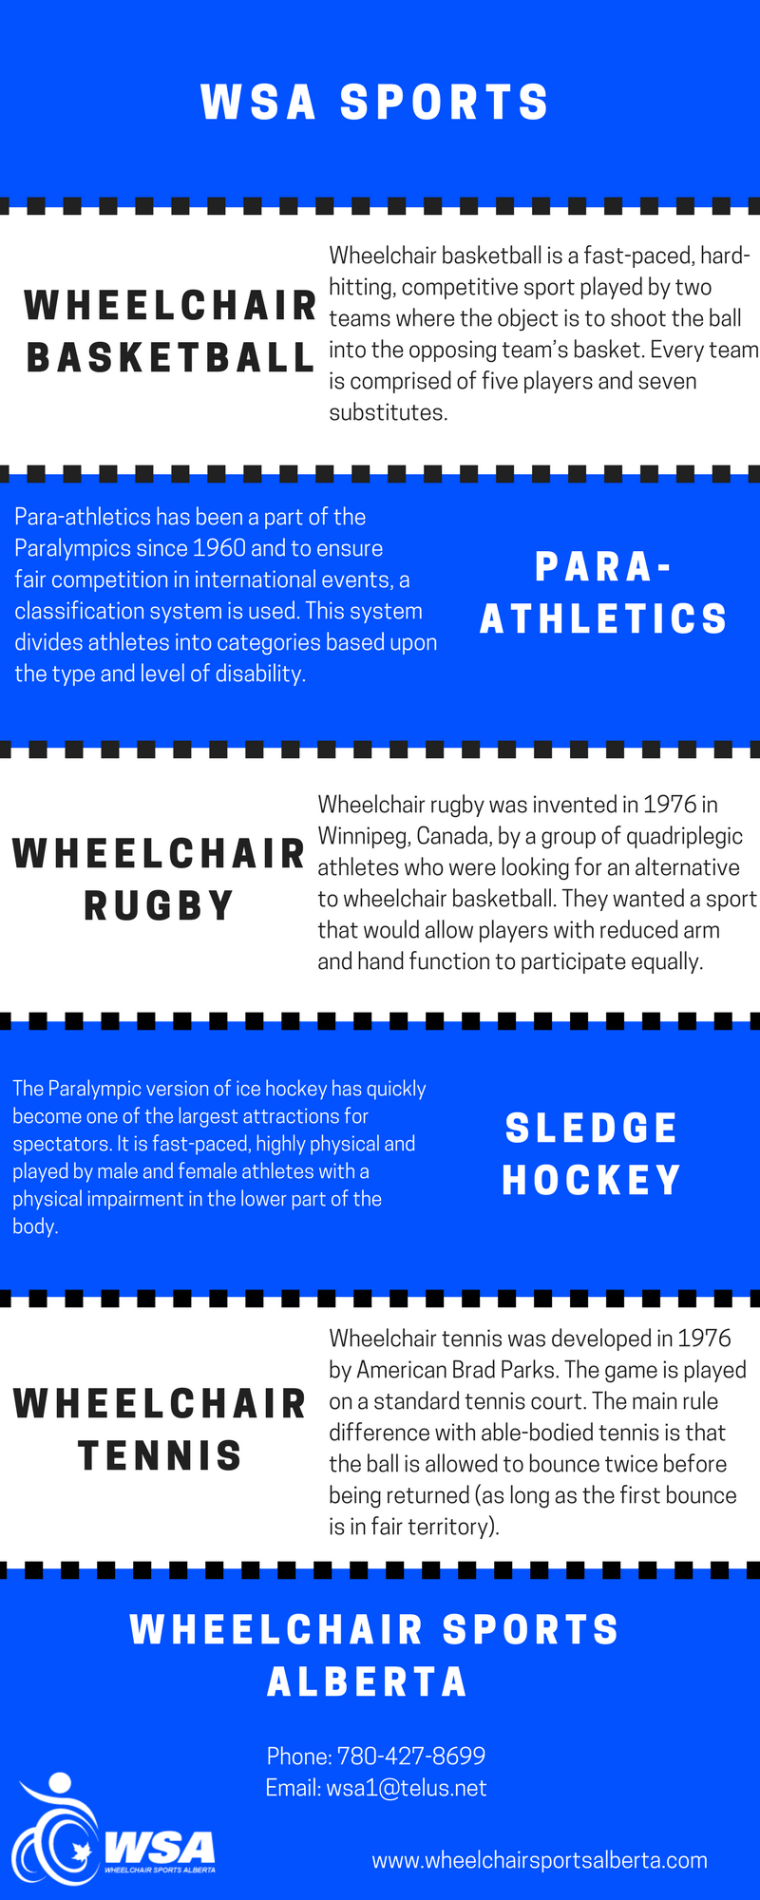 WSA Sports Infographic